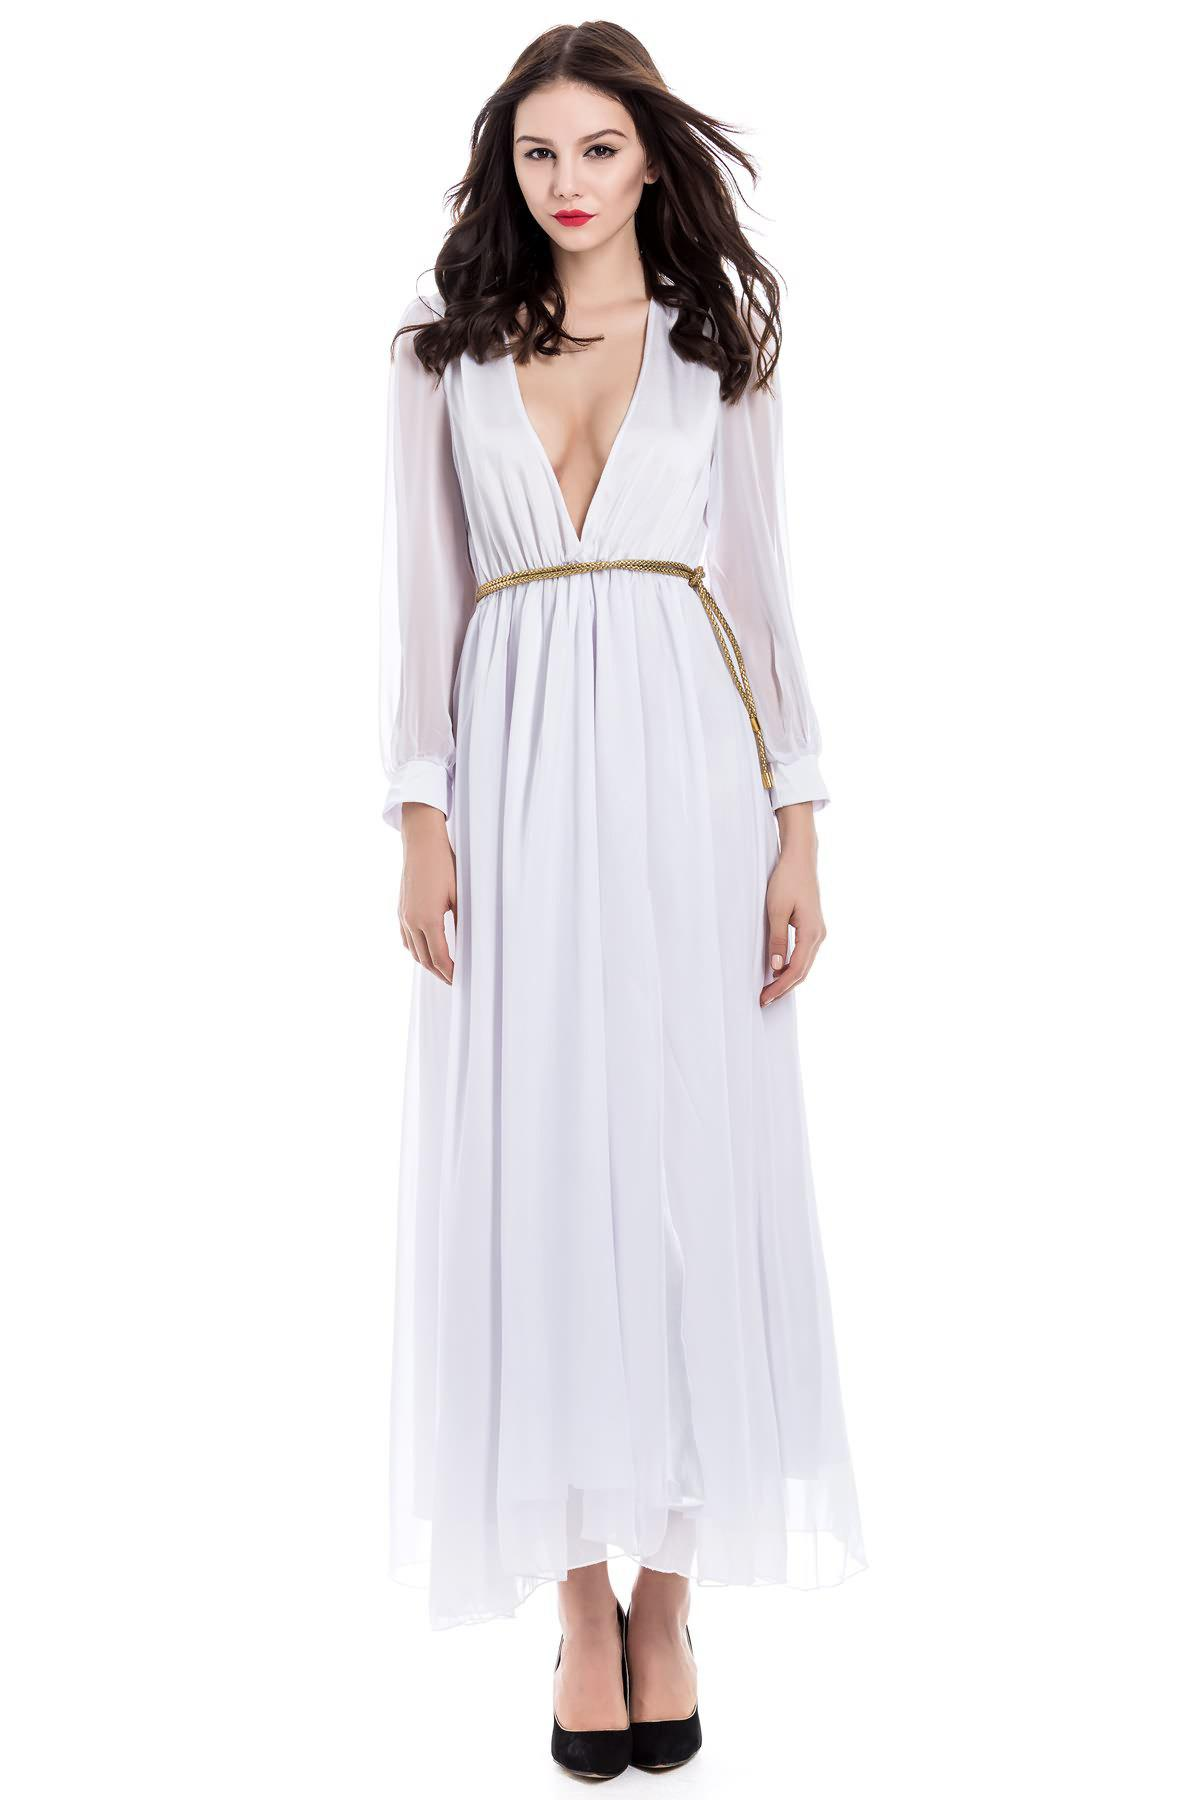 72 Off Long Sleeve Deep Plunging V Neck Slit Maxi Dress